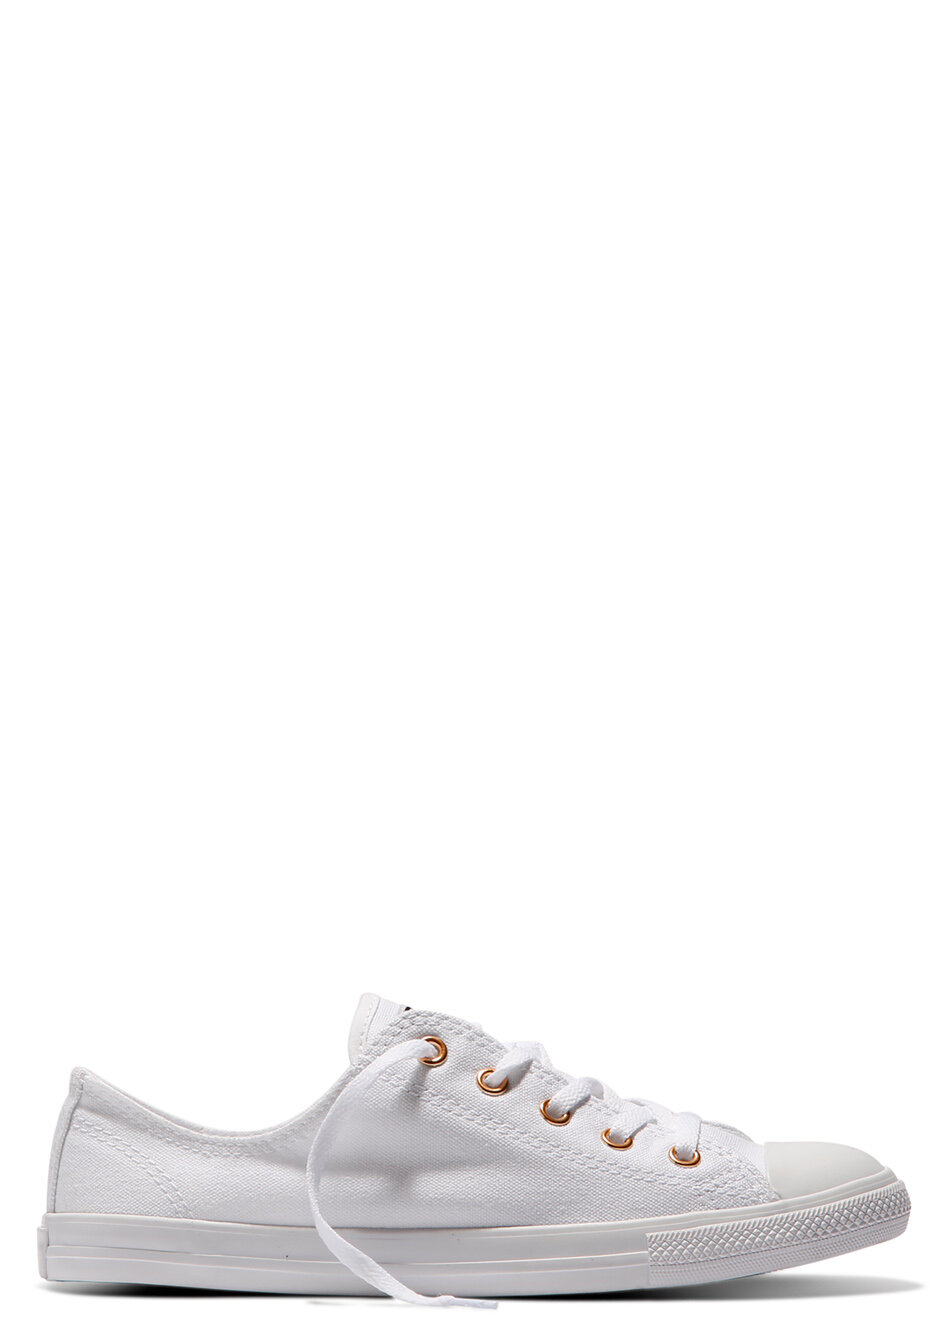 88a041177ef321 CT DAINTY ROSE GOLD EYELET LOW - FOOTWEAR-WOMENS-SHOES   Surf